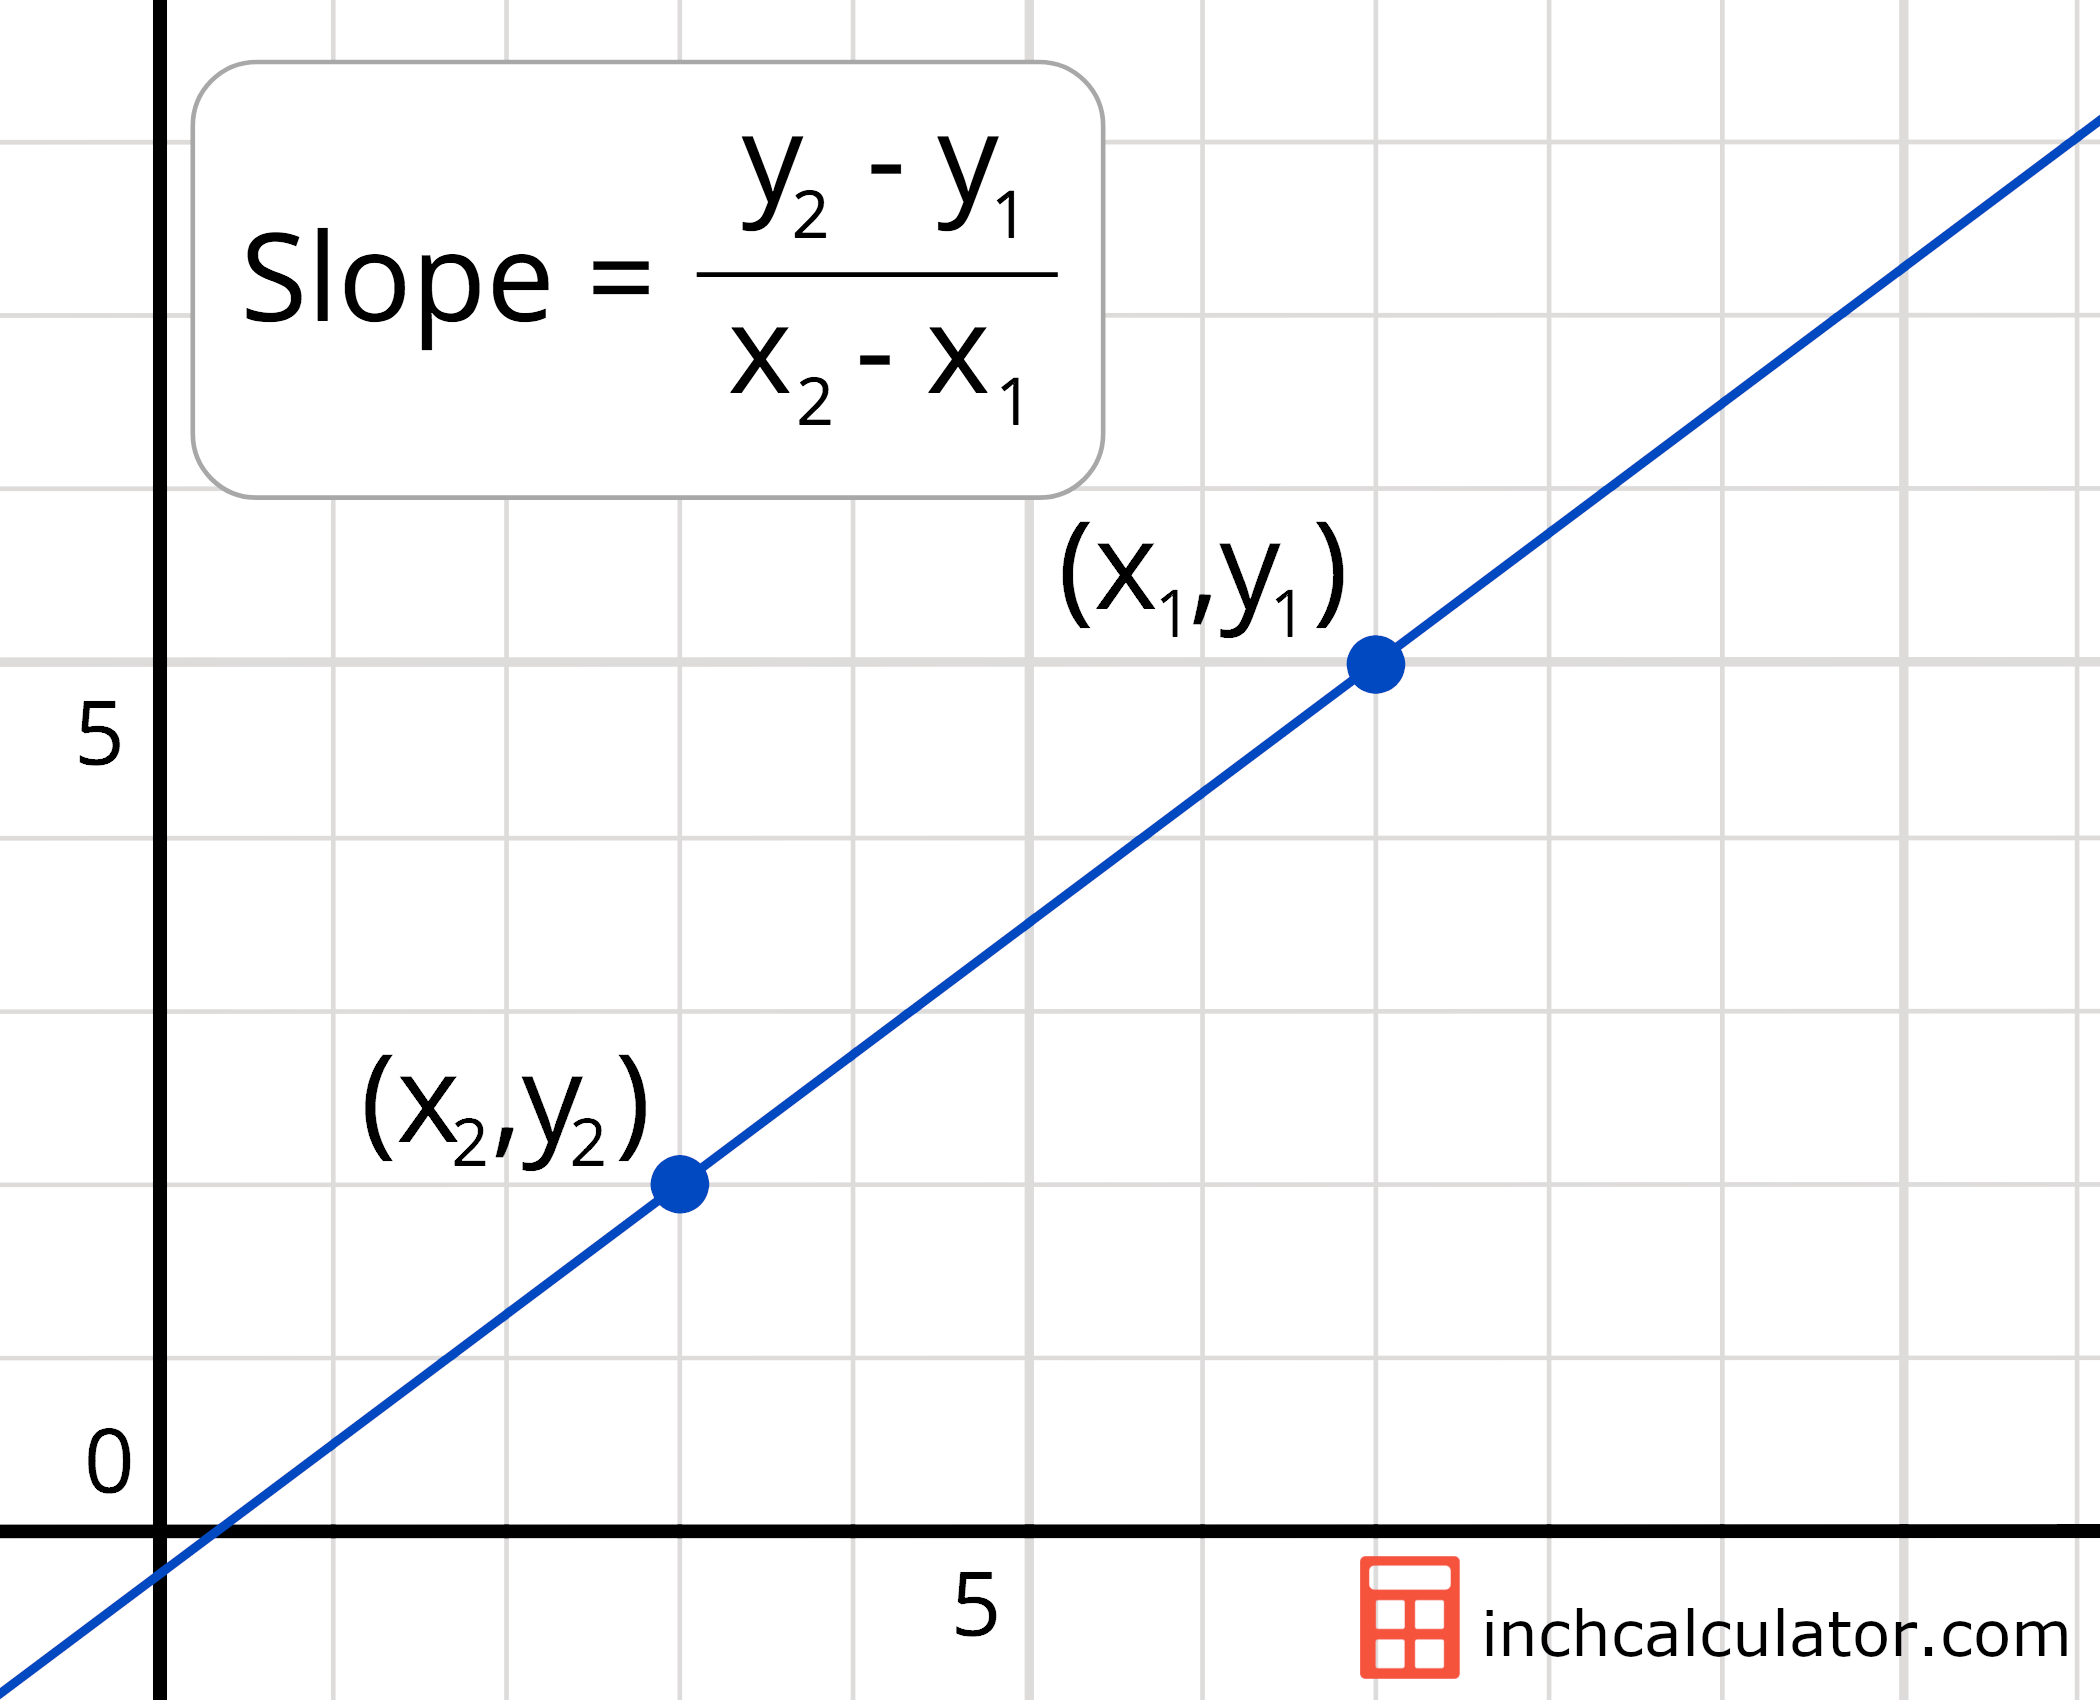 point slope form maker  Slope Calculator - Find the Equation of a Line - Inch Calculator